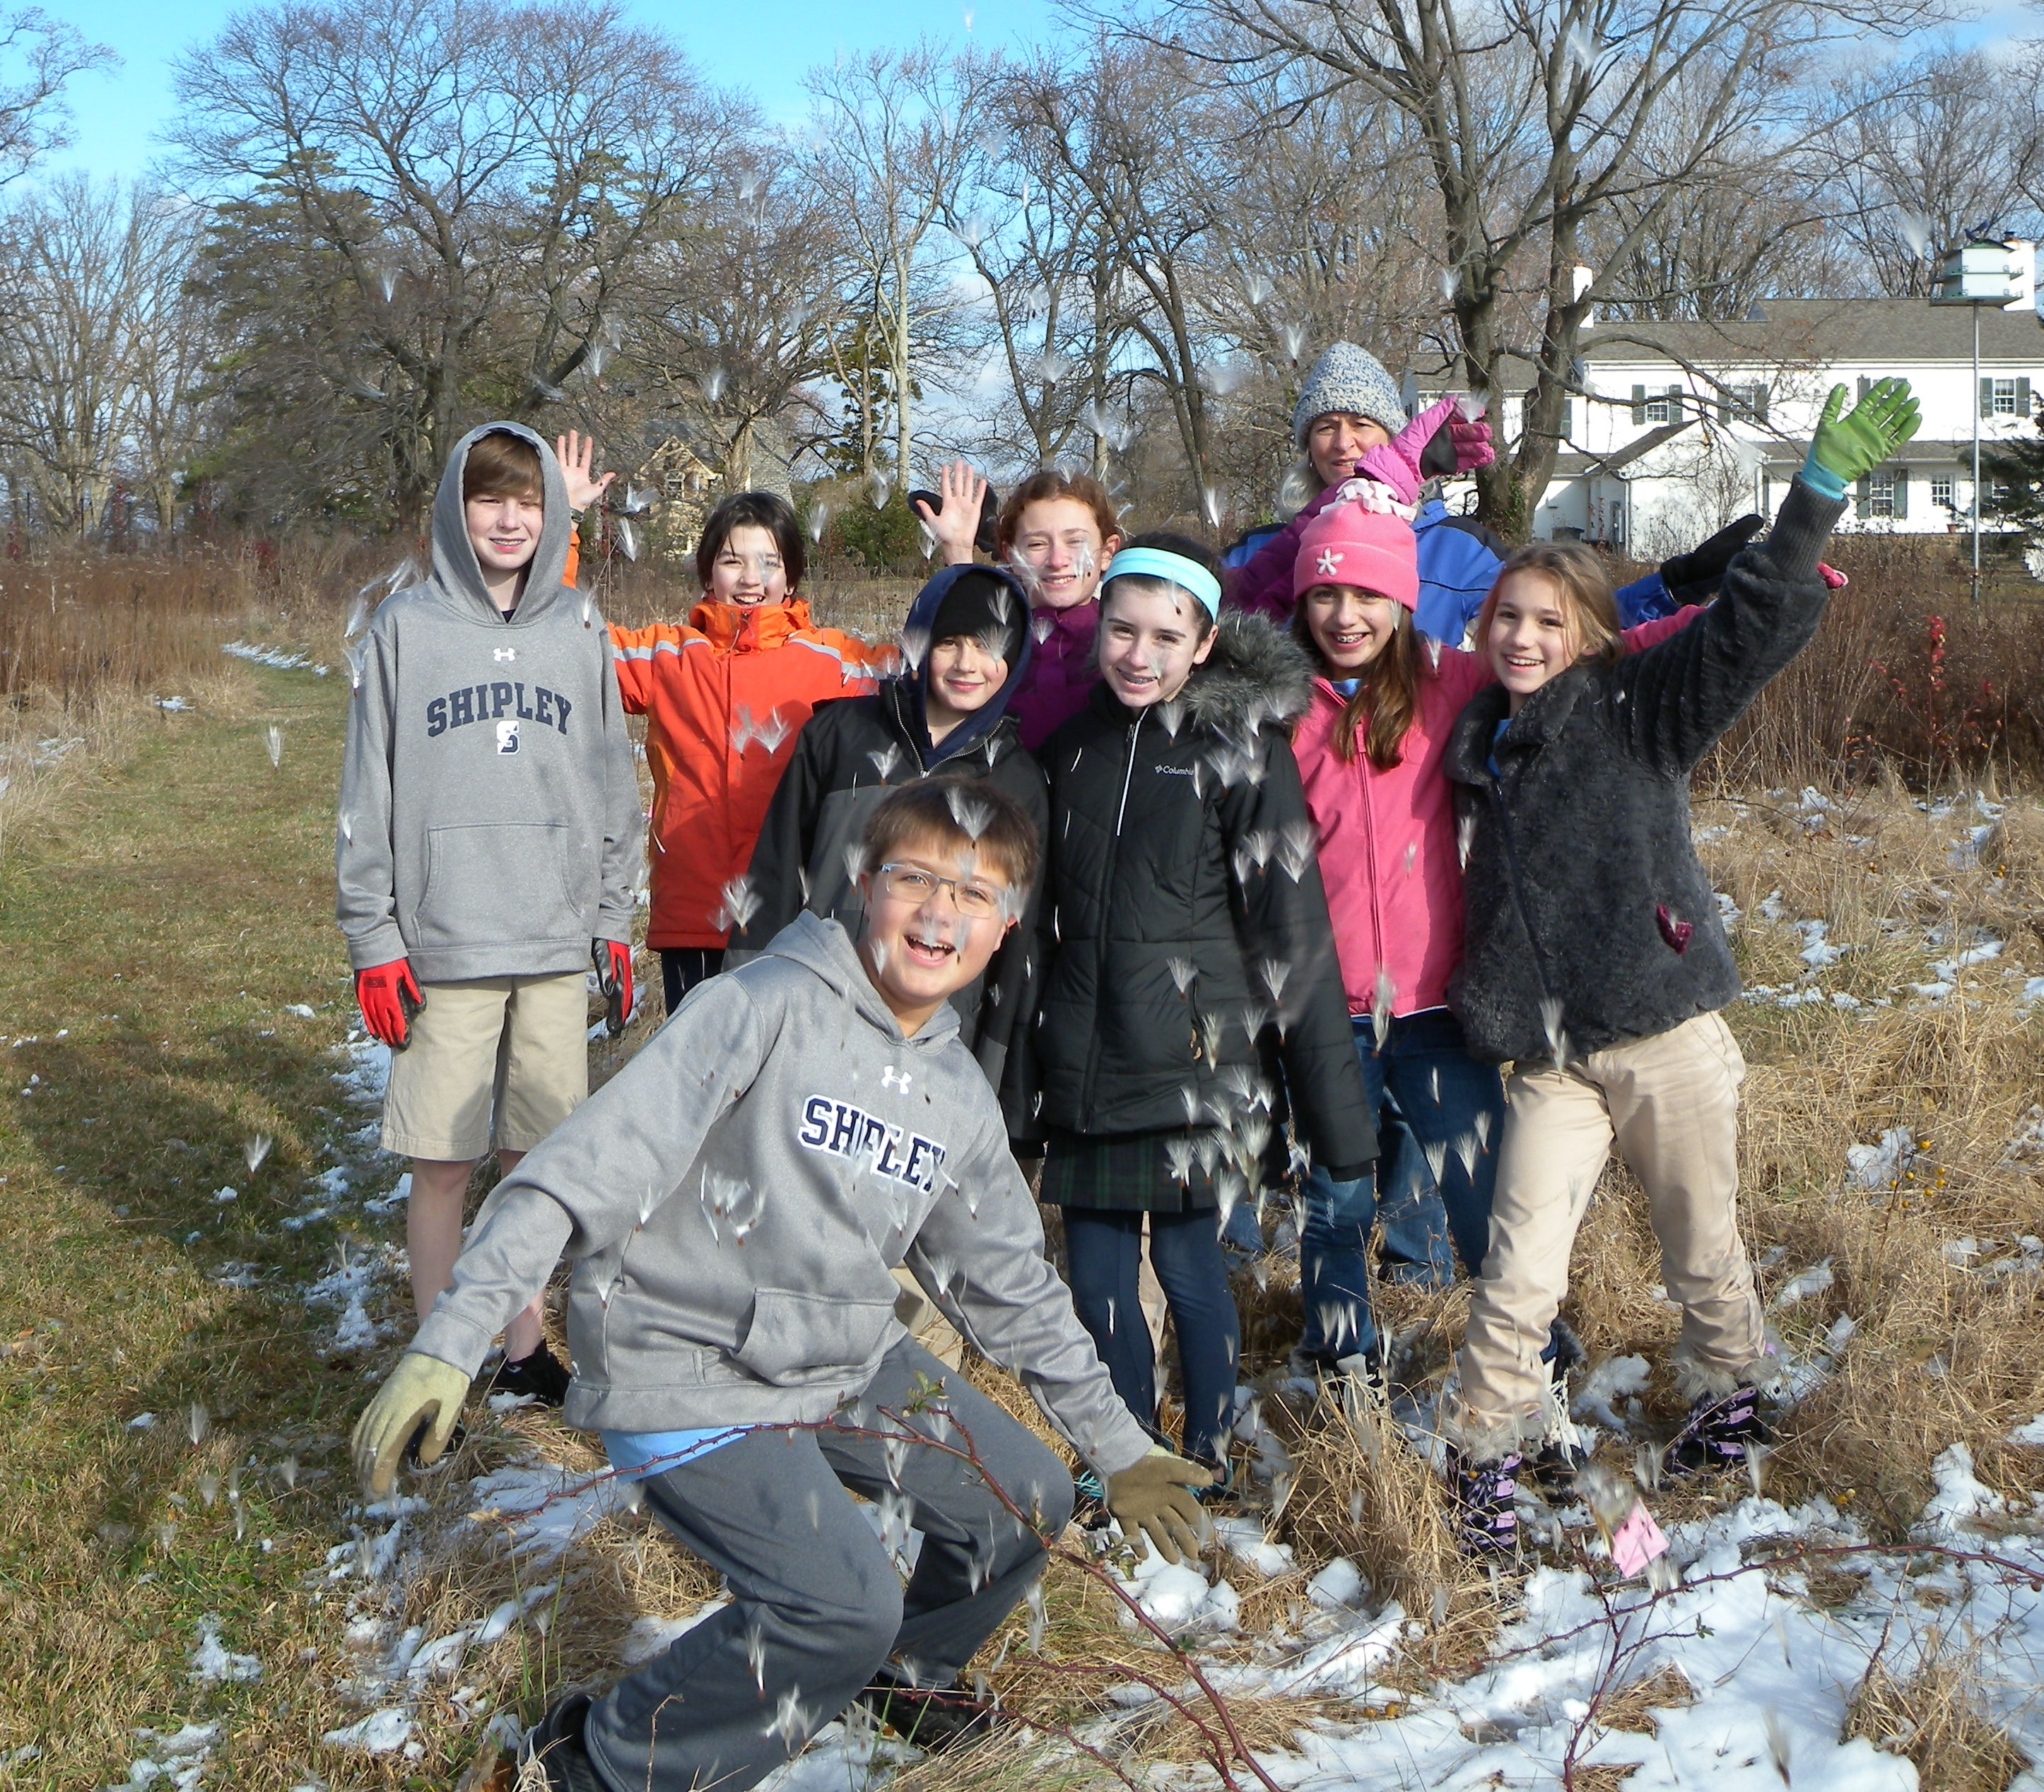 Shipley Service students throwing milkweed seeds into the air.